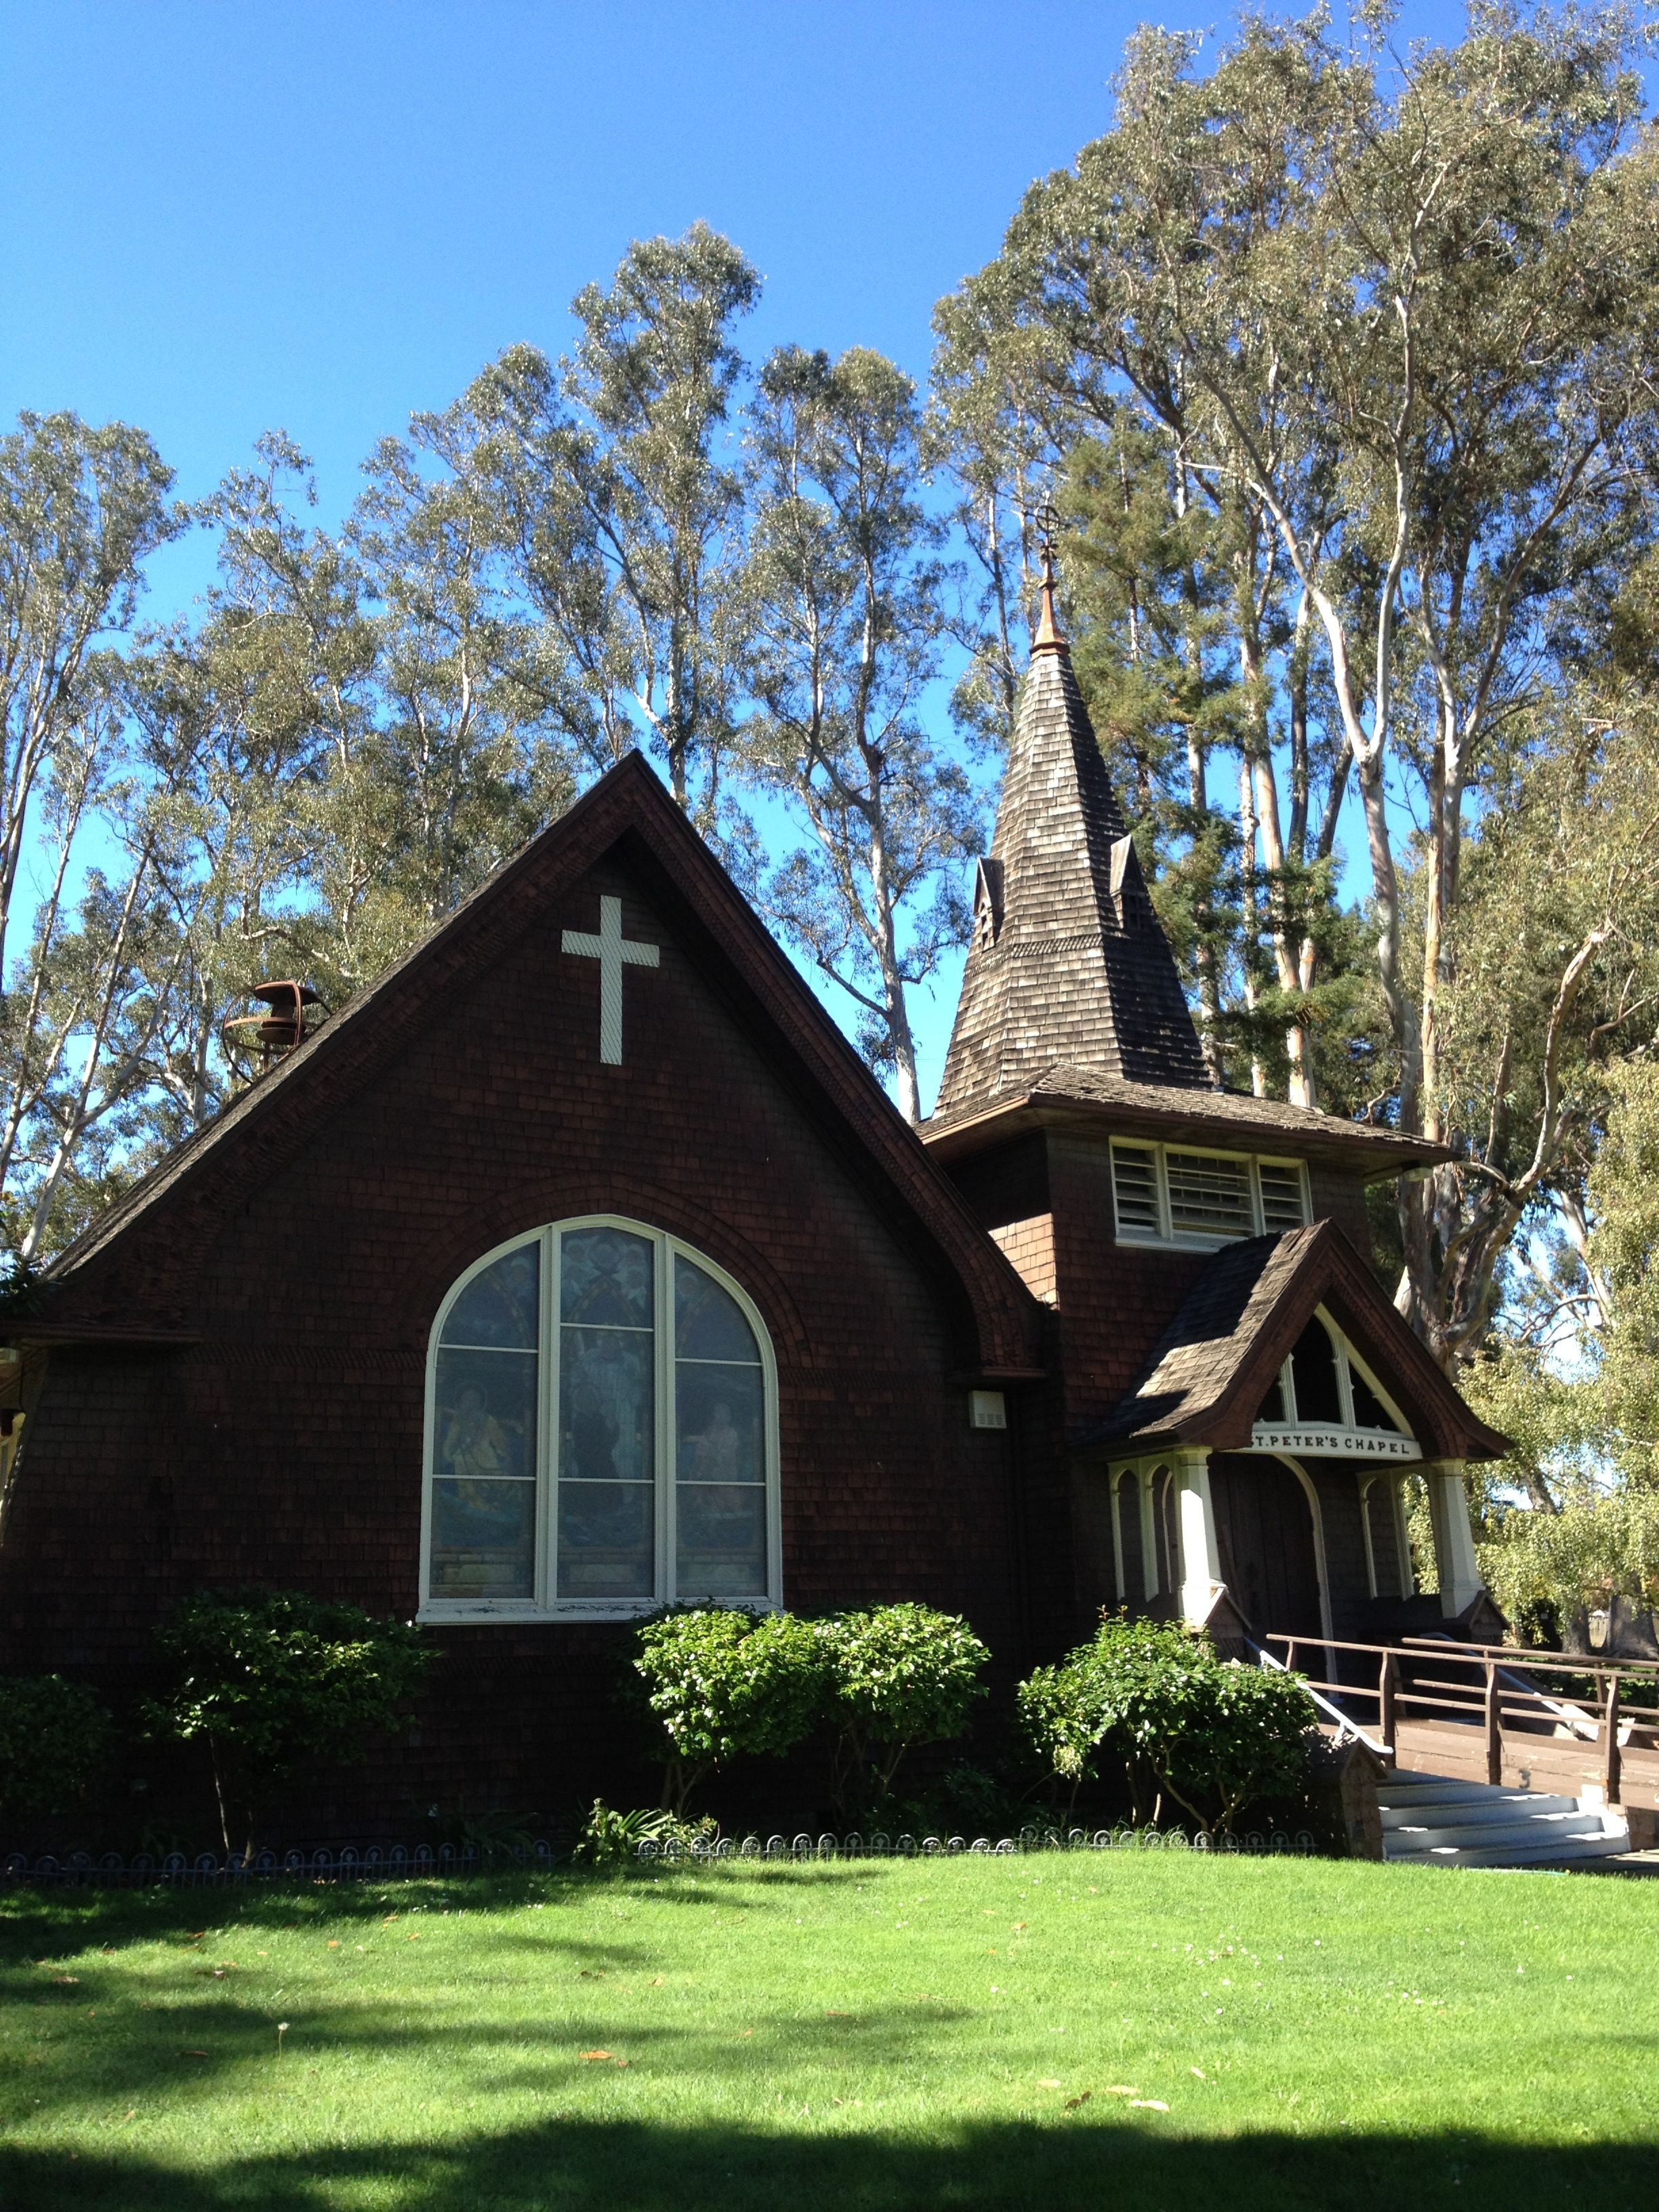 St. Peter's church on Mare Island Naval Base House